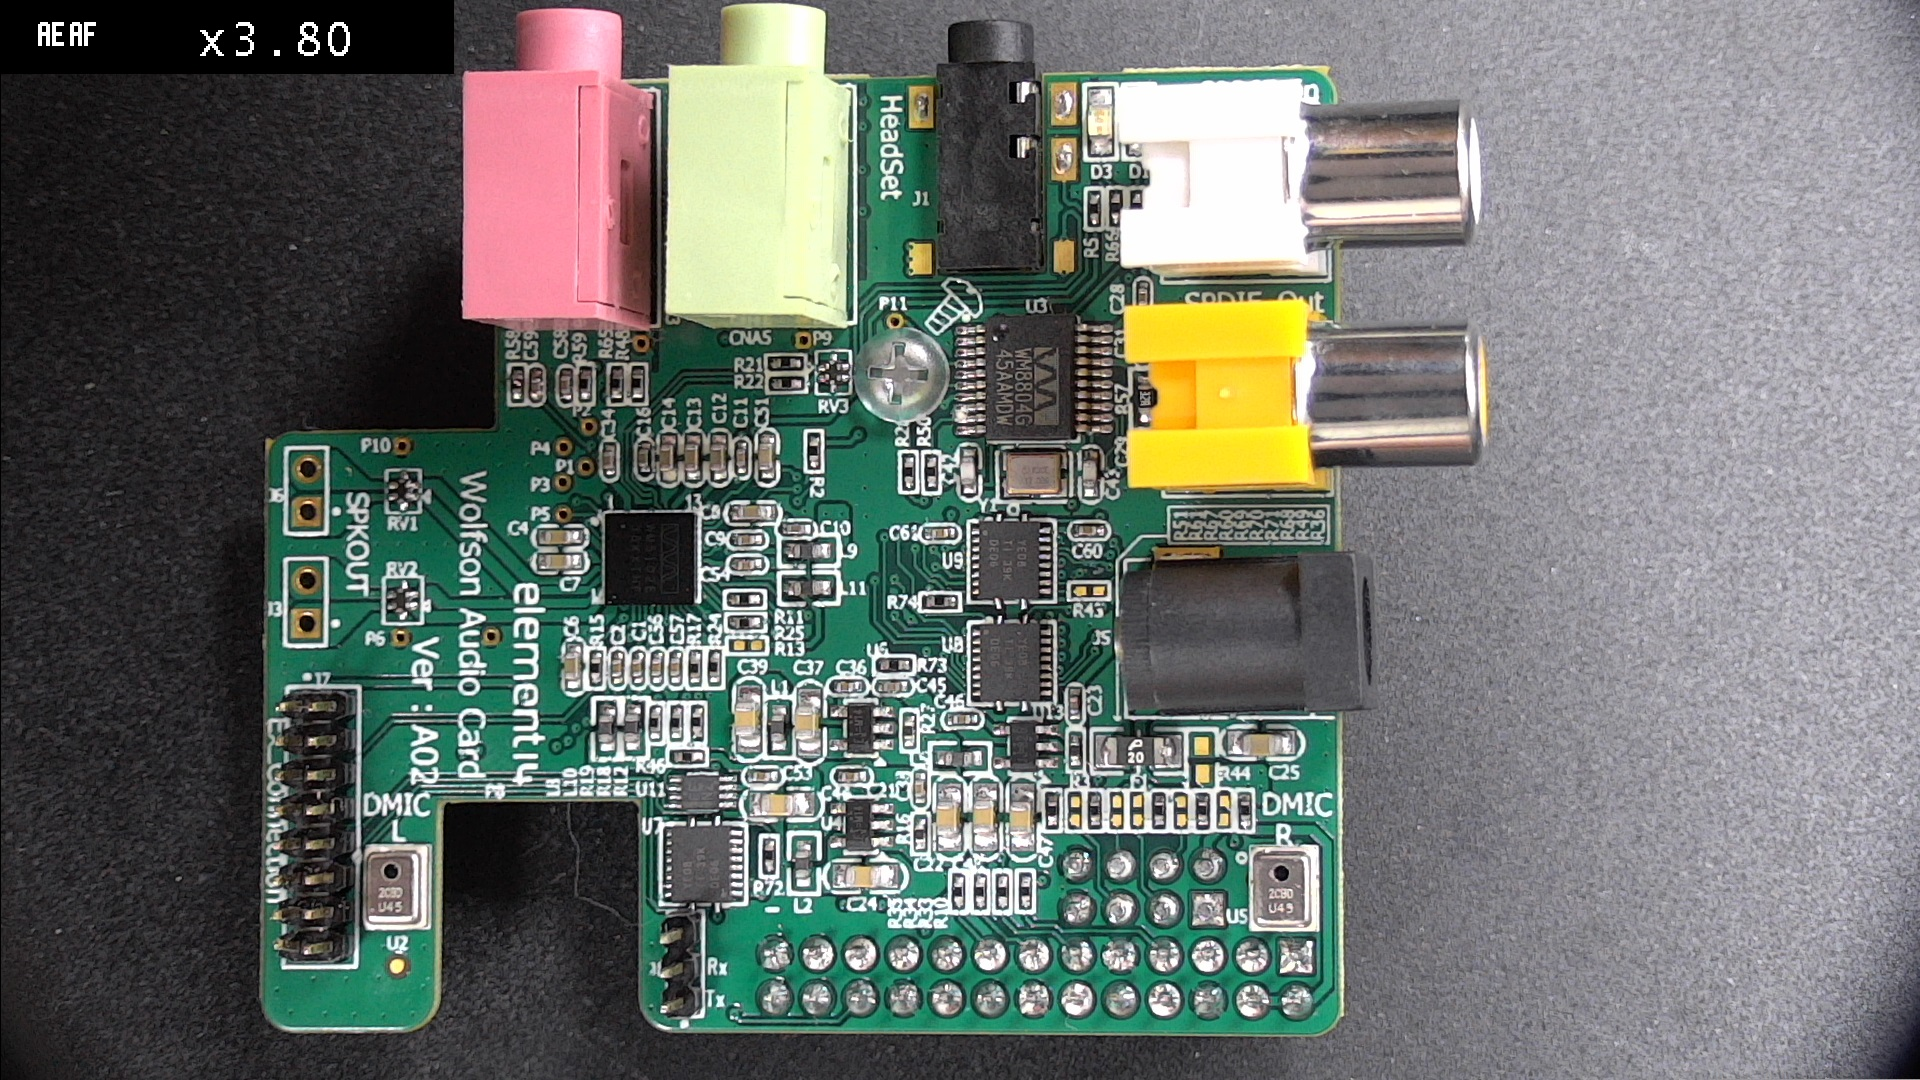 Connecting the Wolfson Sound Card to the Raspberry Pi3 | Life, the